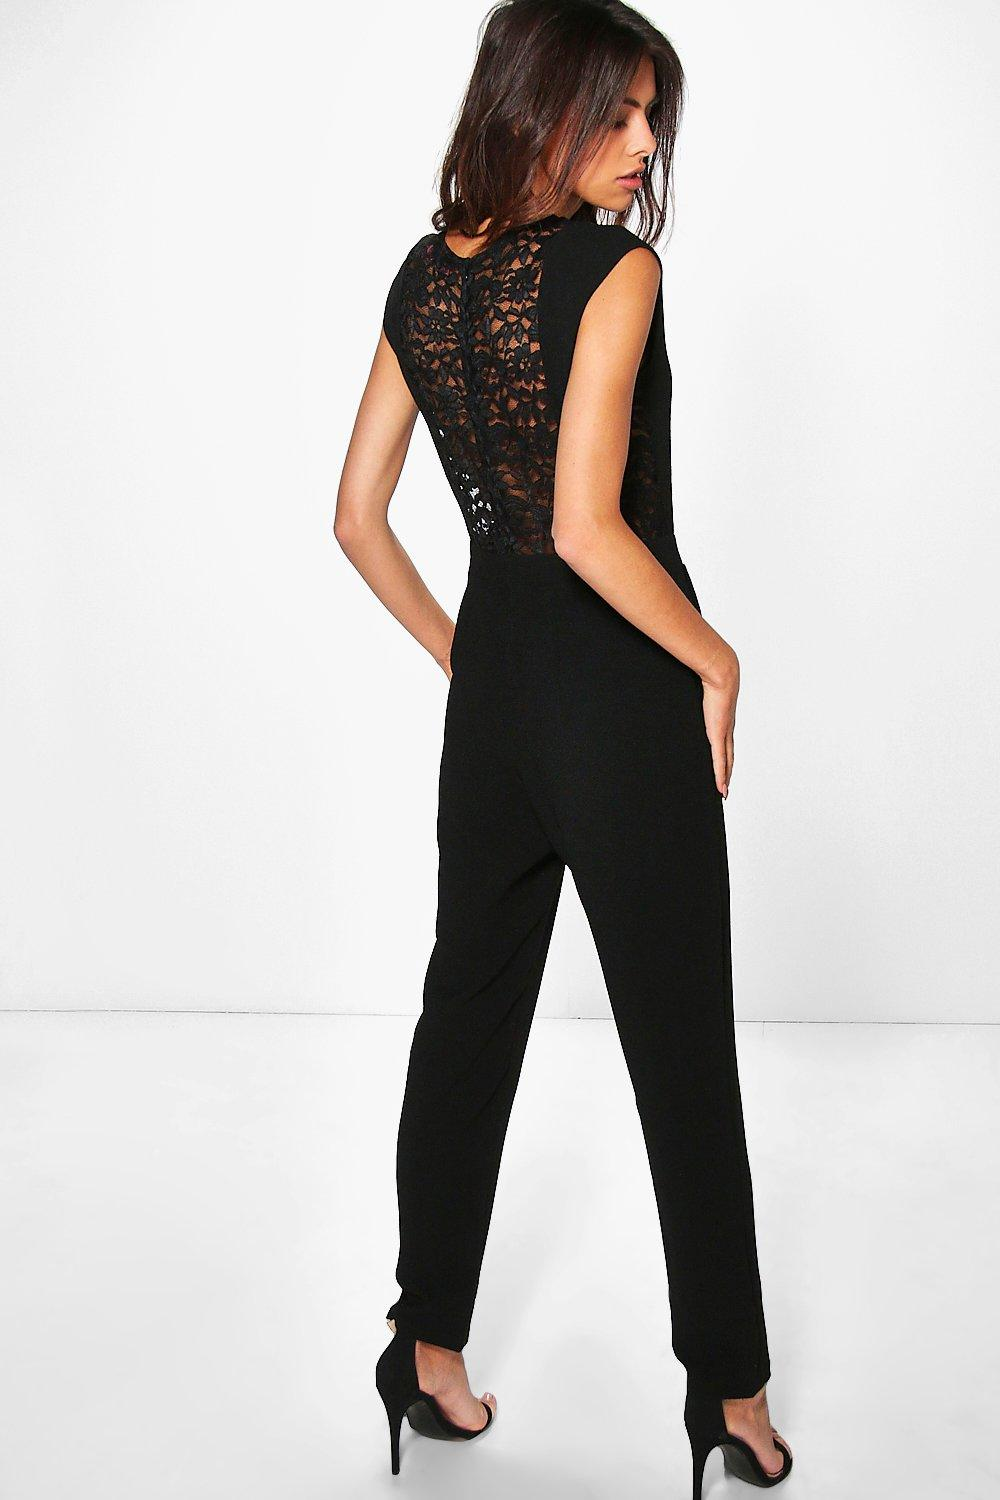 Shop for jumpsuits and rompers for women at loadingtag.ga Find a wide range of women's jumpsuit and romper styles from top brands. Free shipping and returns.